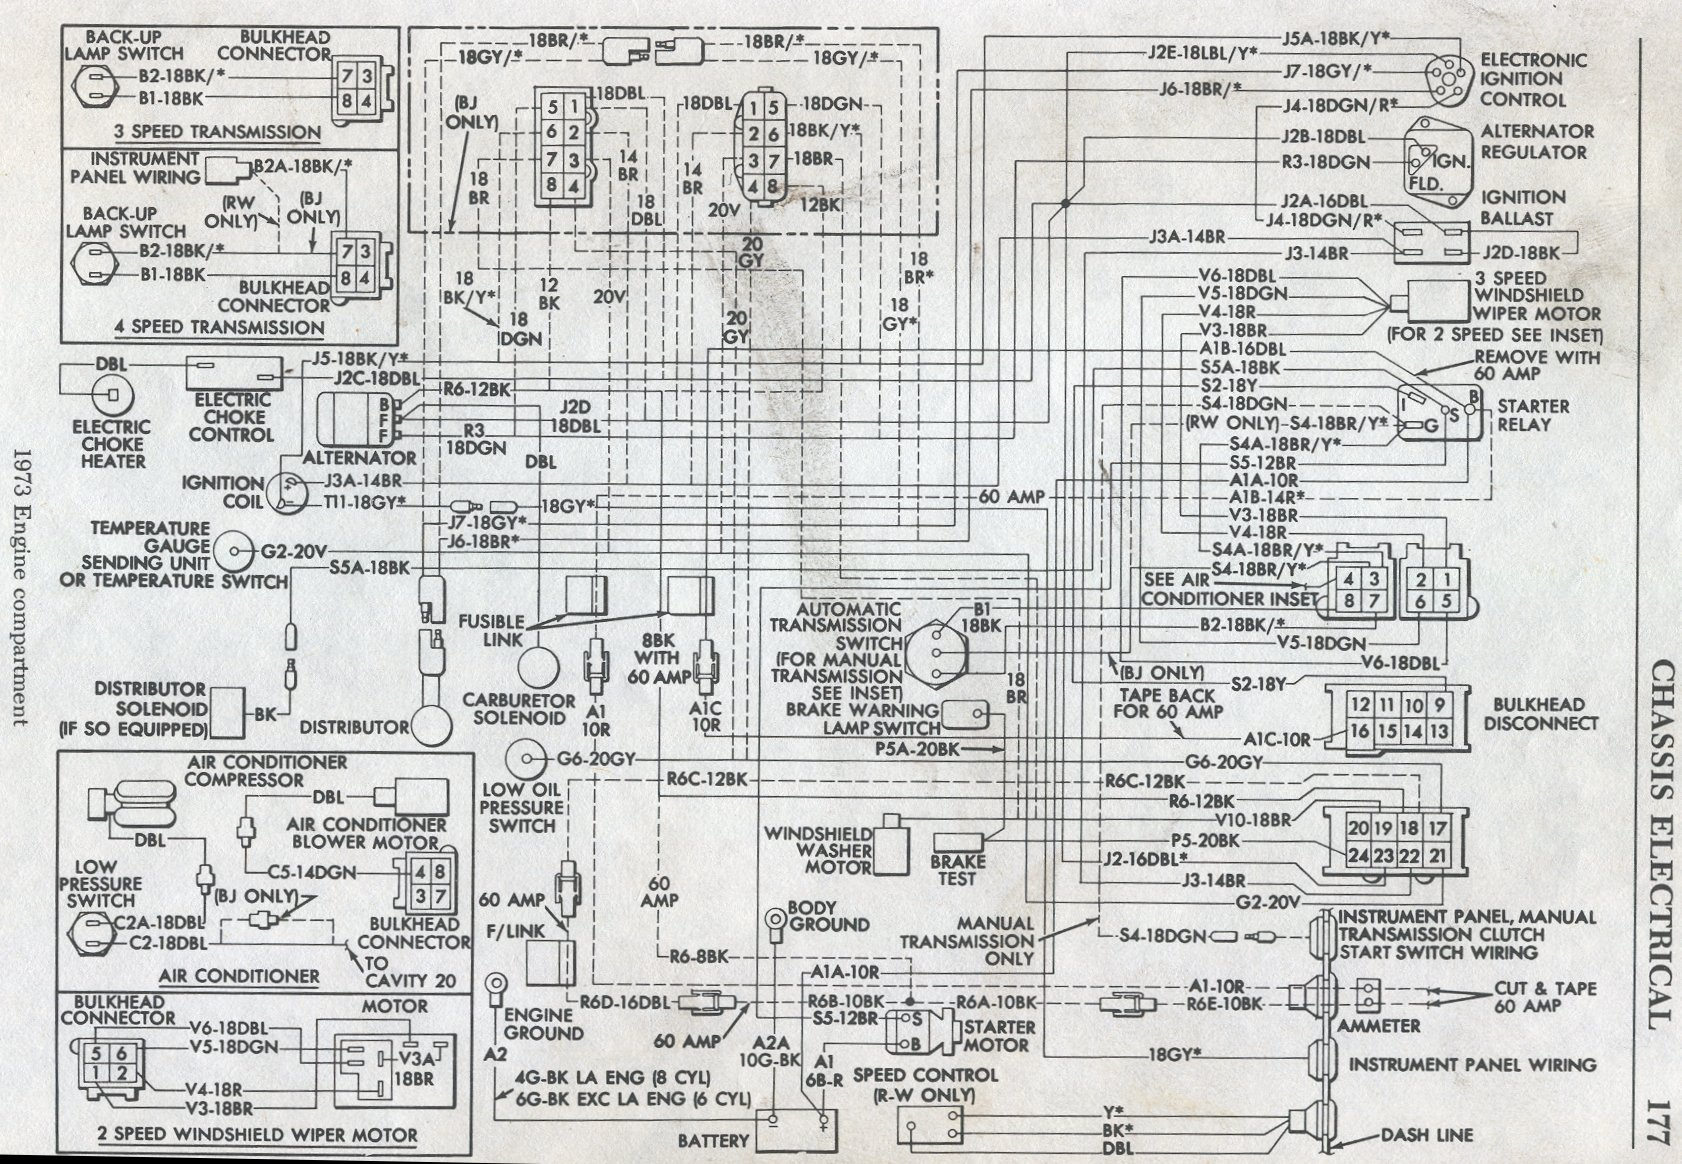 1973 duster wiring diagram need 1973 duster wiring diagrams please! | moparts ... 1973 dodge duster wiring diagram #1